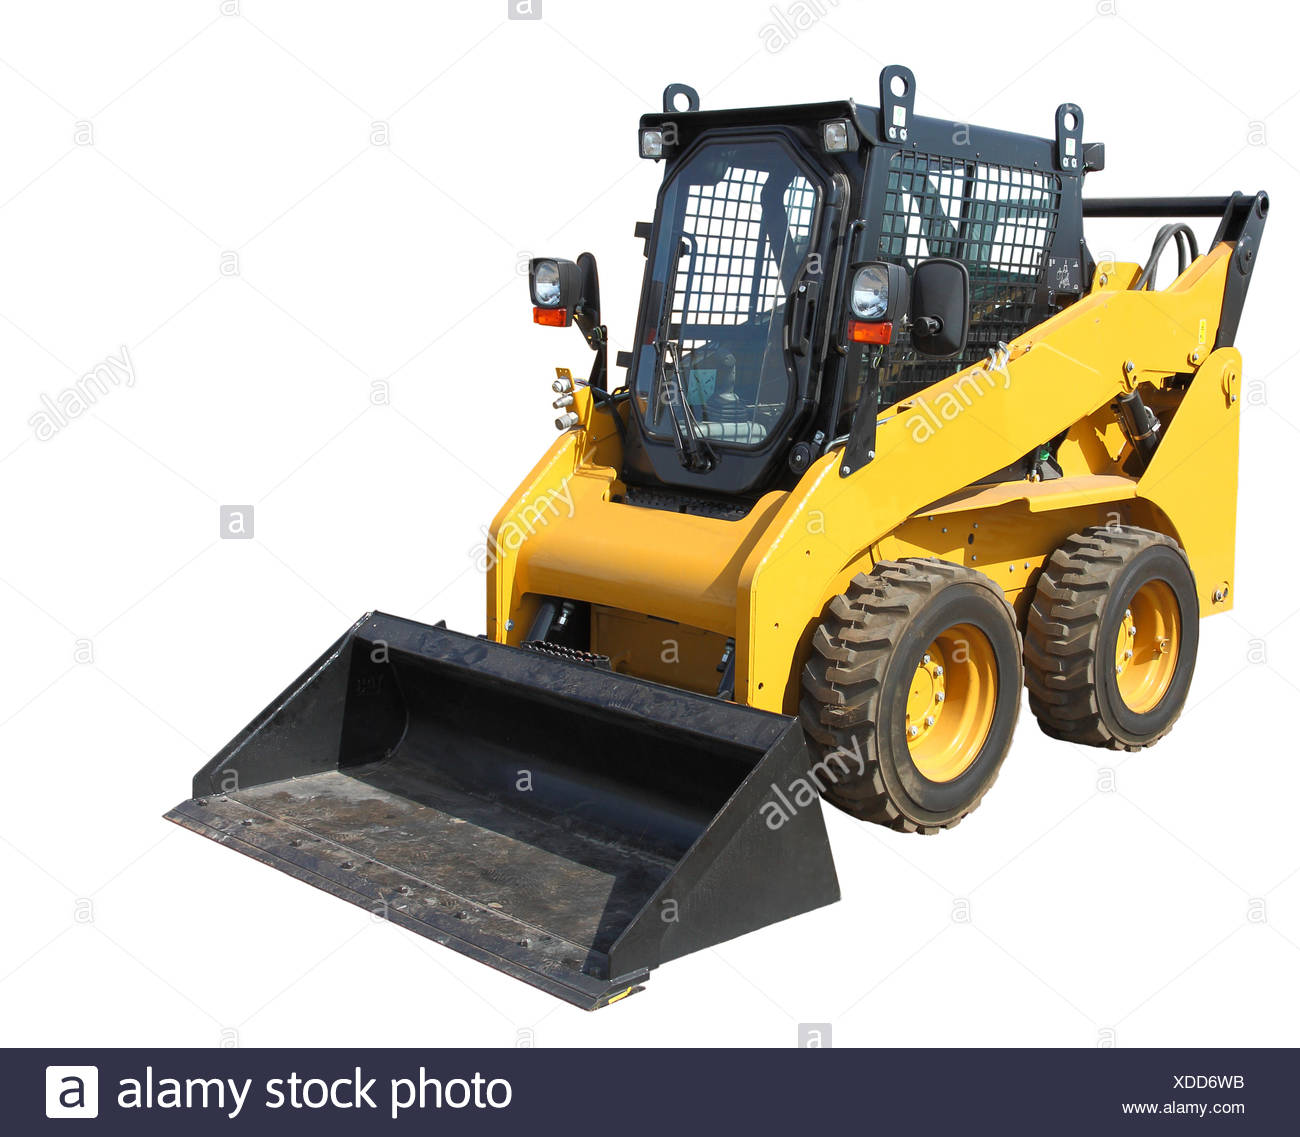 The yellow truck with a scraper to lift cargo. - Stock Image